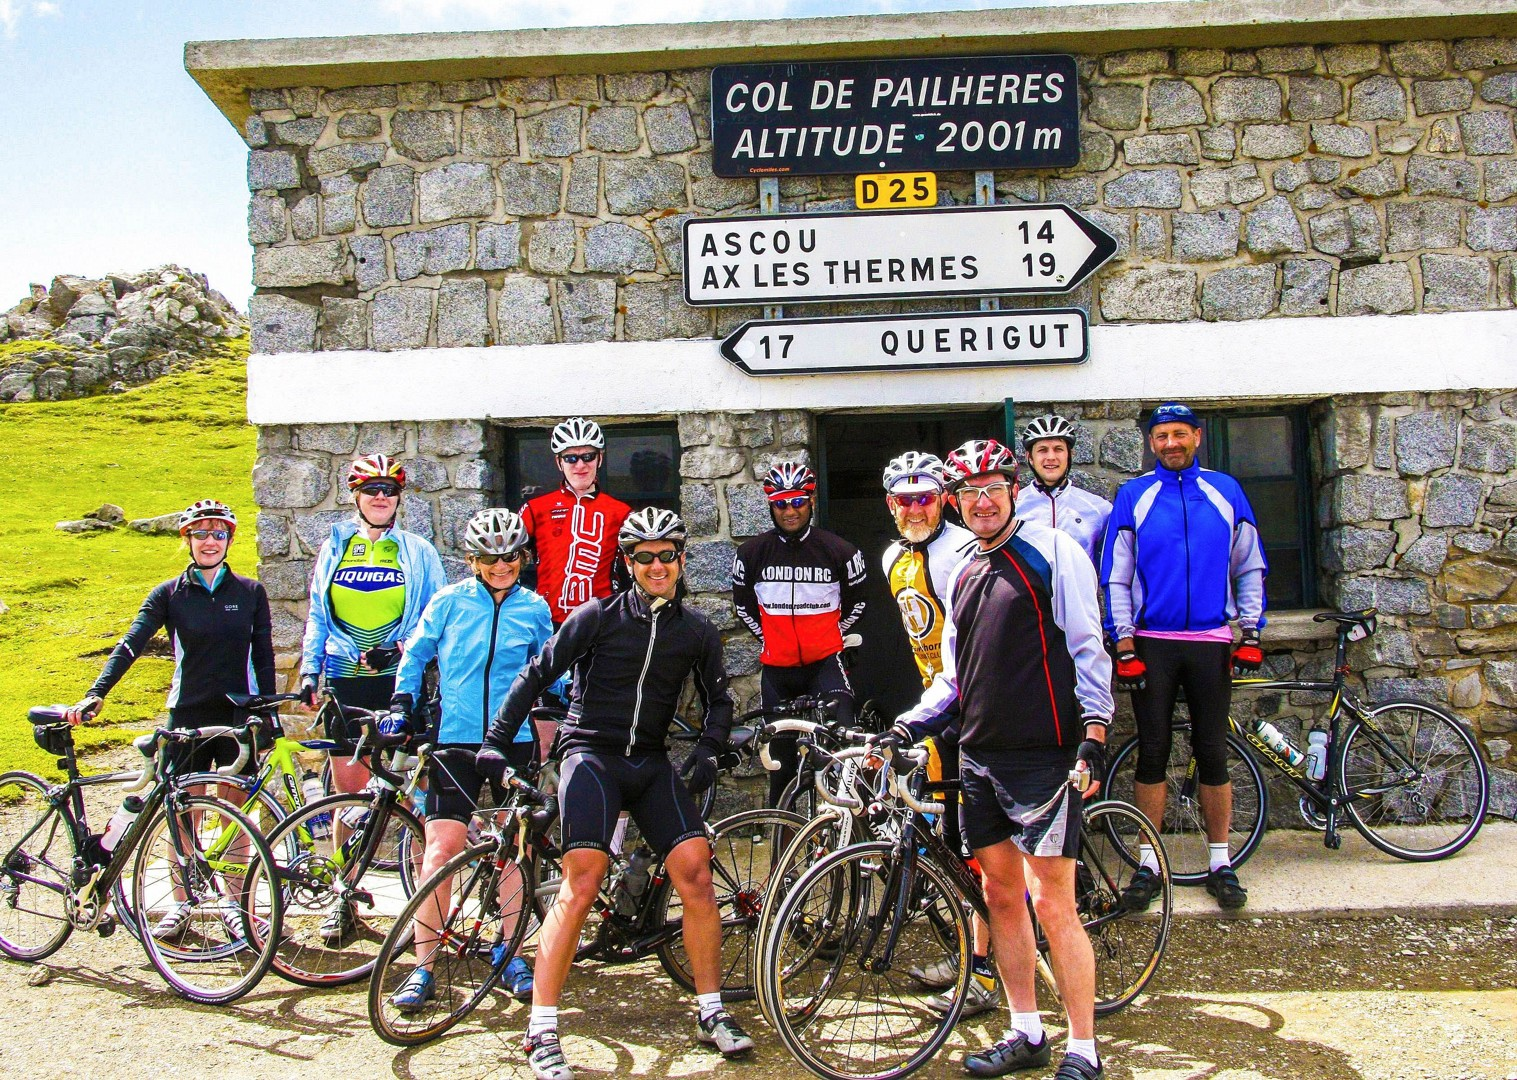 french-pailheres-saddle-skedaddle-challenging-pyrenees-holiday-cycling.jpg - France - Pyrenees Fitness Week (Grade 3-4) - Guided Road Cycling Holiday - Road Cycling